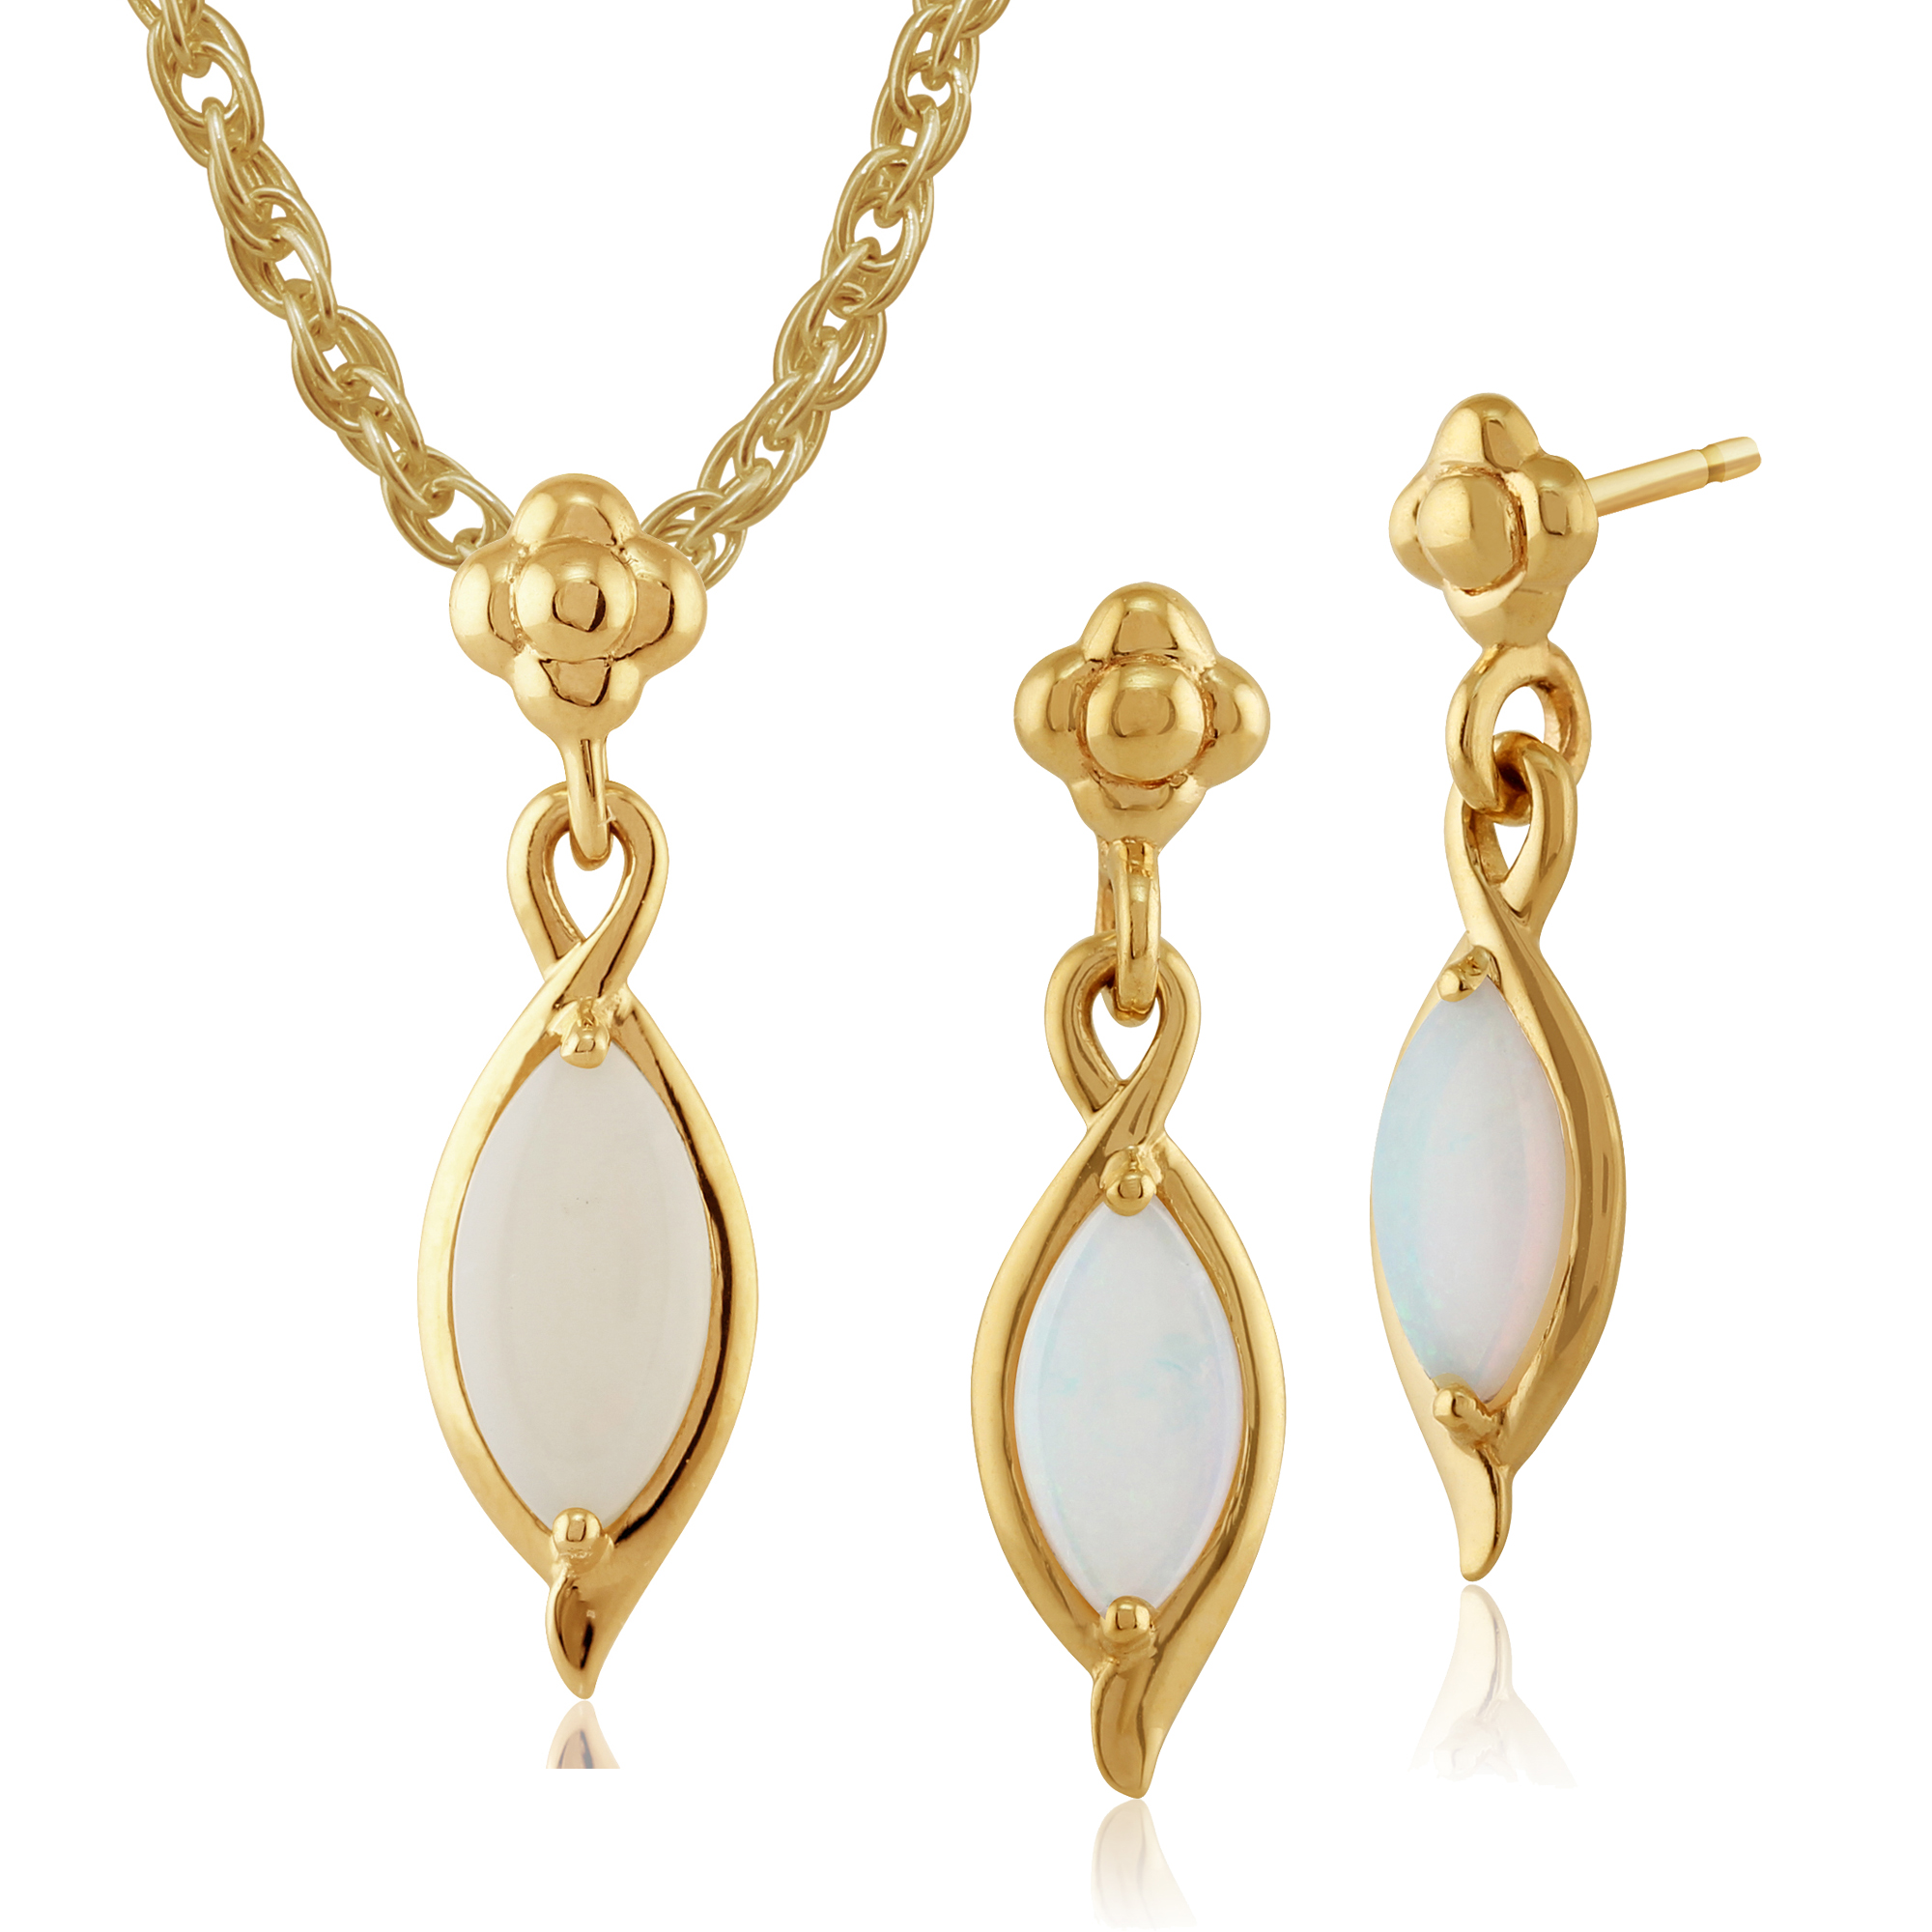 Gemondo 9ct Yellow Gold Genuine Opal Cabochon Floral Drop Earring & Necklace Set